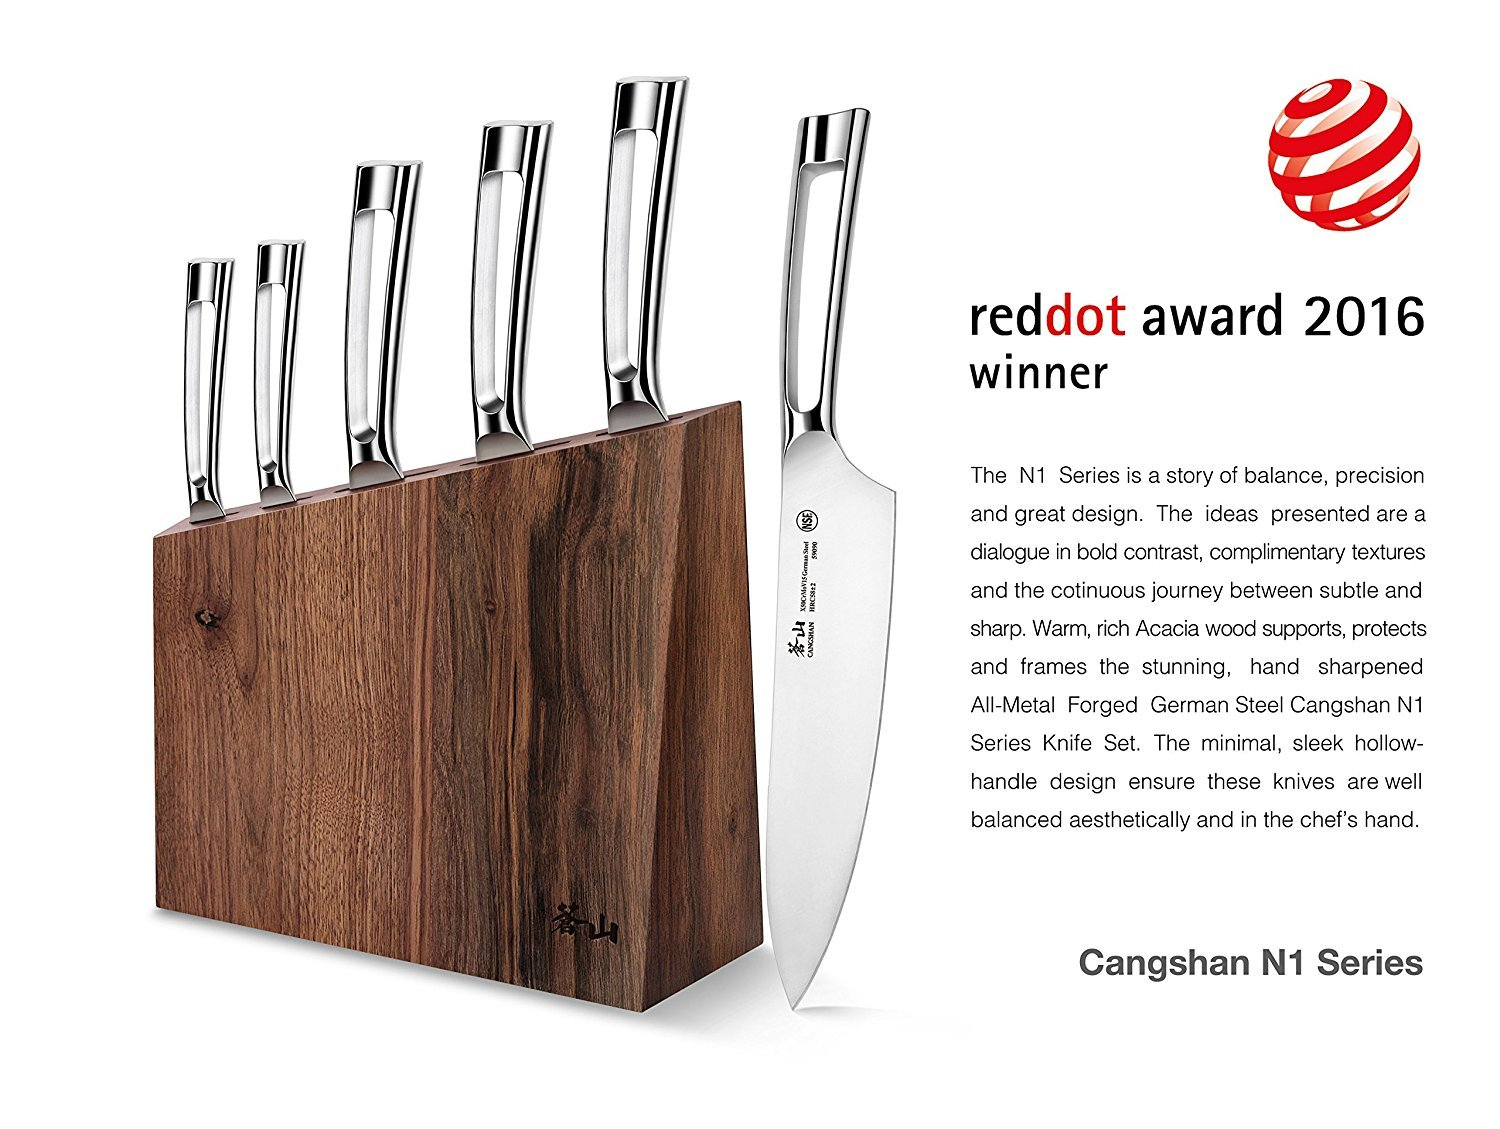 Cangshan N1 Series 61017 6-Piece German Steel Forged Knife Block Set, Walnut Block by Cangshan (Image #5)